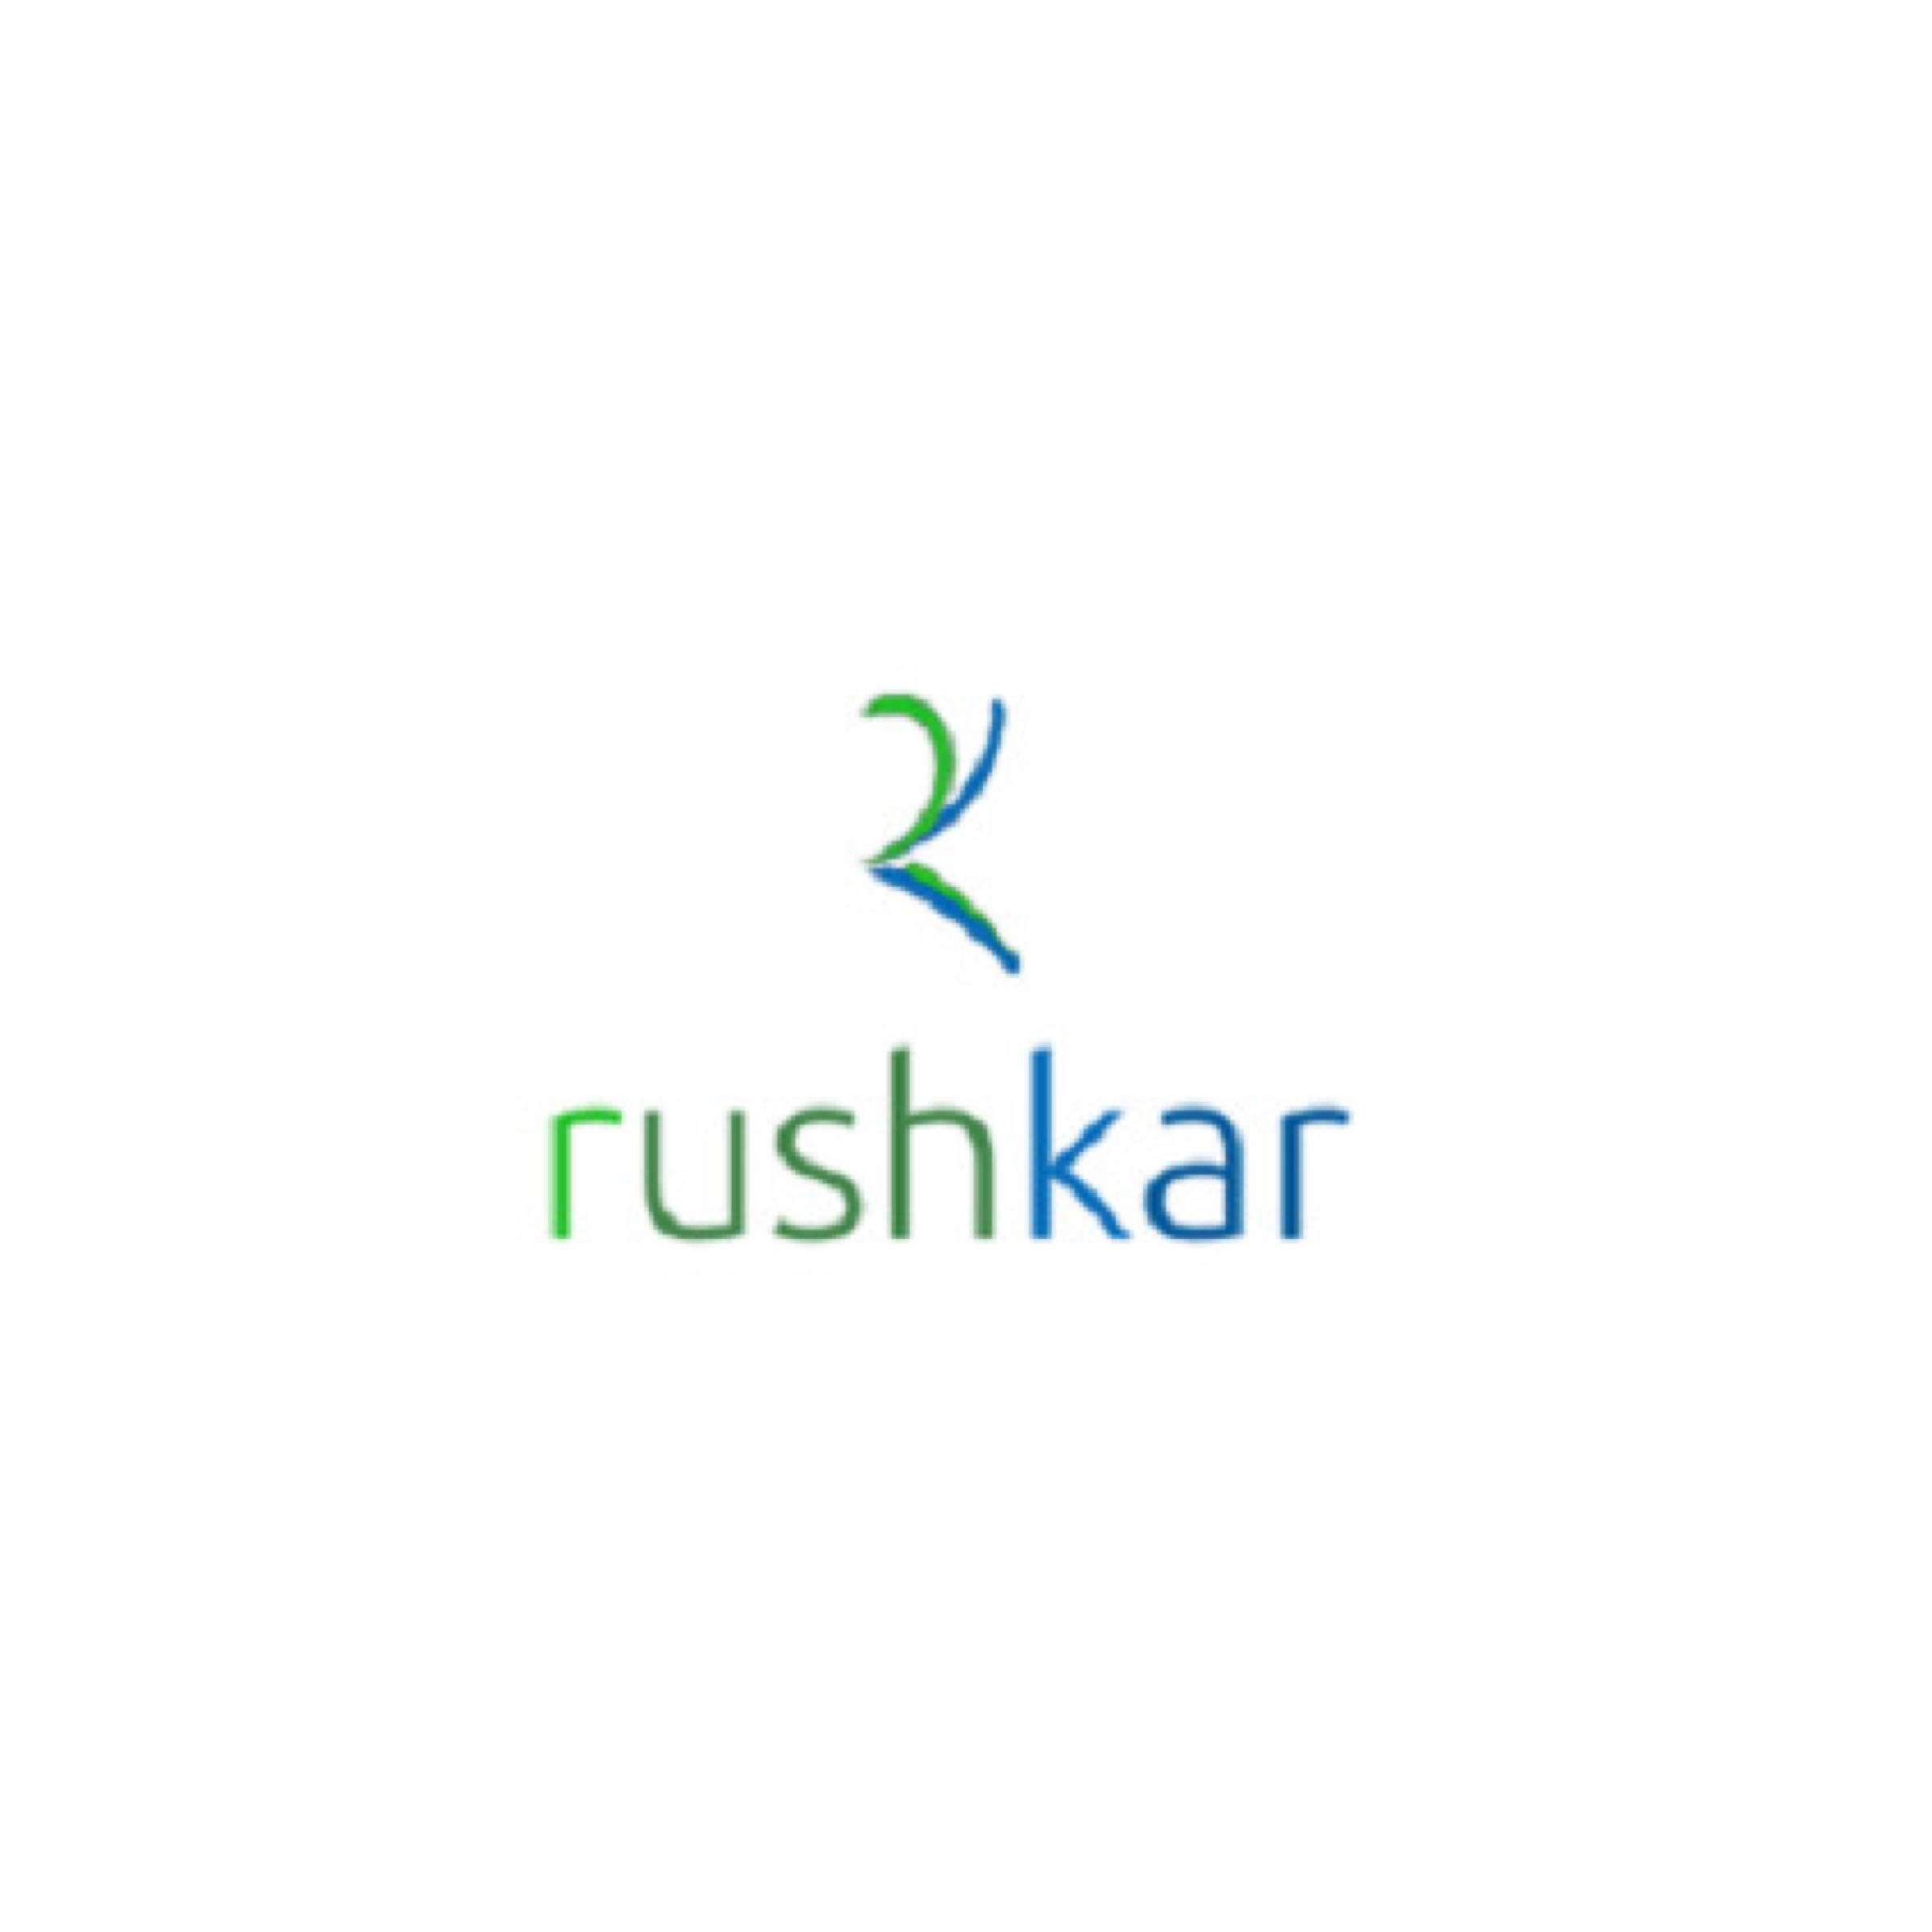 Article about App Developers in India - Rushkar